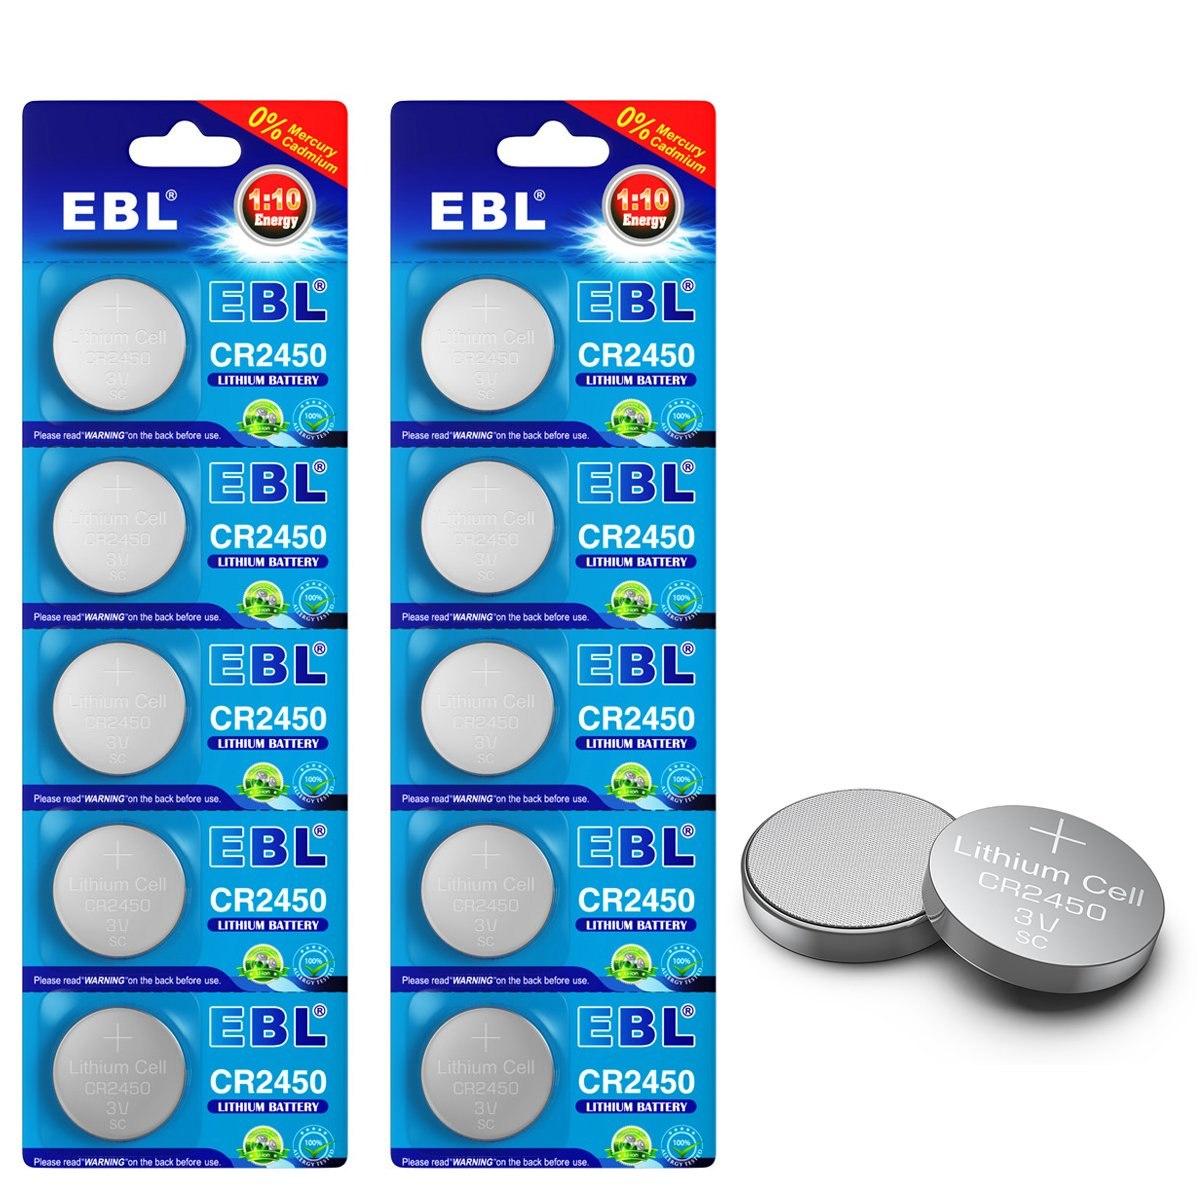 EBL 10pcs CR2450 Battery 630mAh CR2450H High Capacity 3V Lithium Battery (Not CR2450N) Special for Flameless Candles Window Sensors